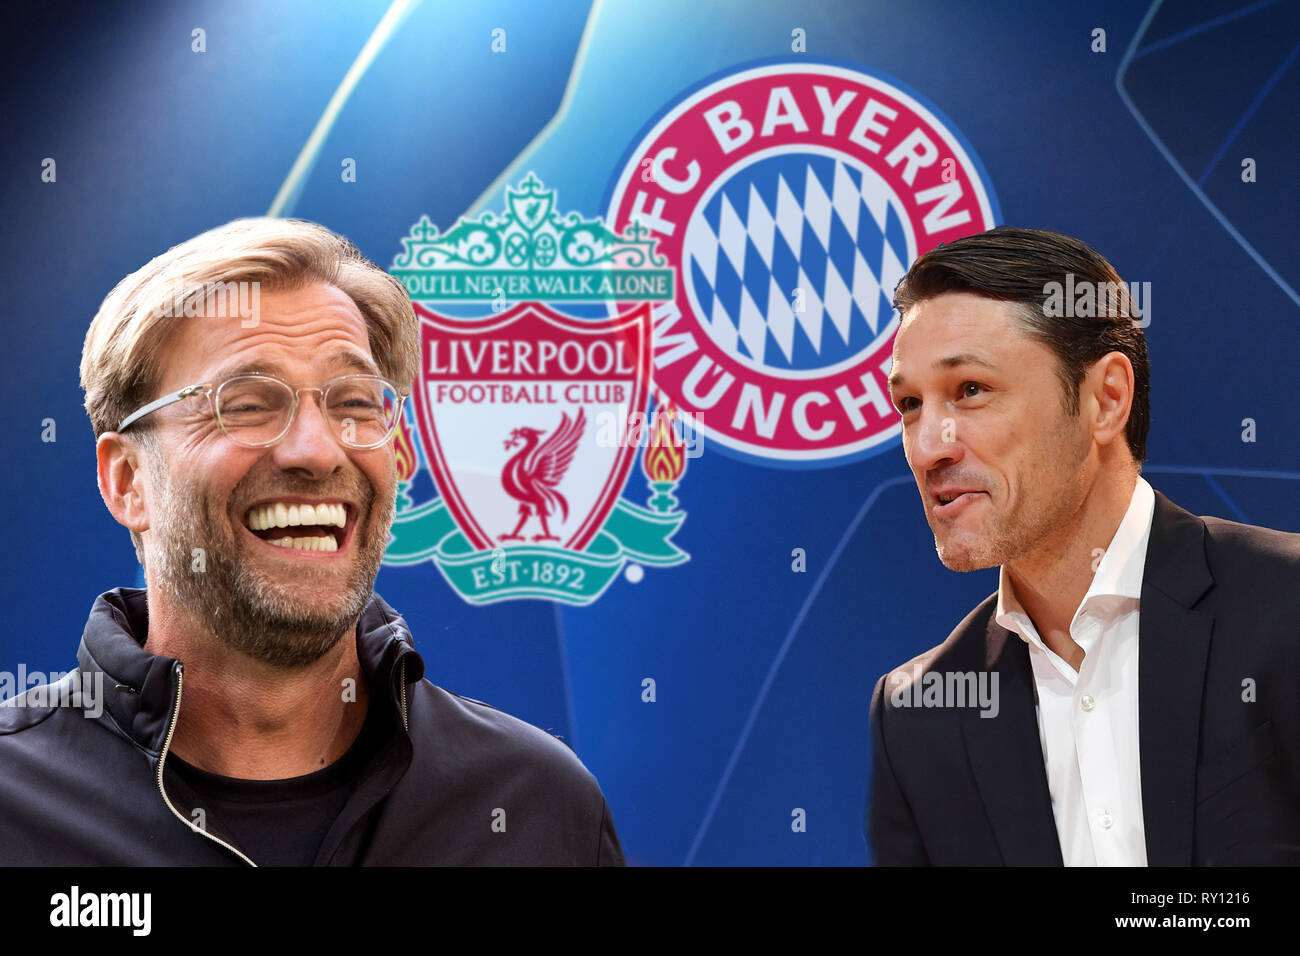 PHOTO MOUNTAIN: Preview of the CL Final Fantasy Tournament: Niko KOVAC (coach Bayern Munich, re) and Juergen KLOPP (coach Liverpool) meet. FC Bayern Munich (M) - Liverpool (LIV), Football Champions League, Round of 16, on 13/03/2019. ALLIANZAREN A. DFL REGULATION PROHIBIT ANY USE OF PHOTOGRAPHS AS IMAGE SEQUENCES AND / OR QUASI VIDEO. | usage worldwide - Stock Image